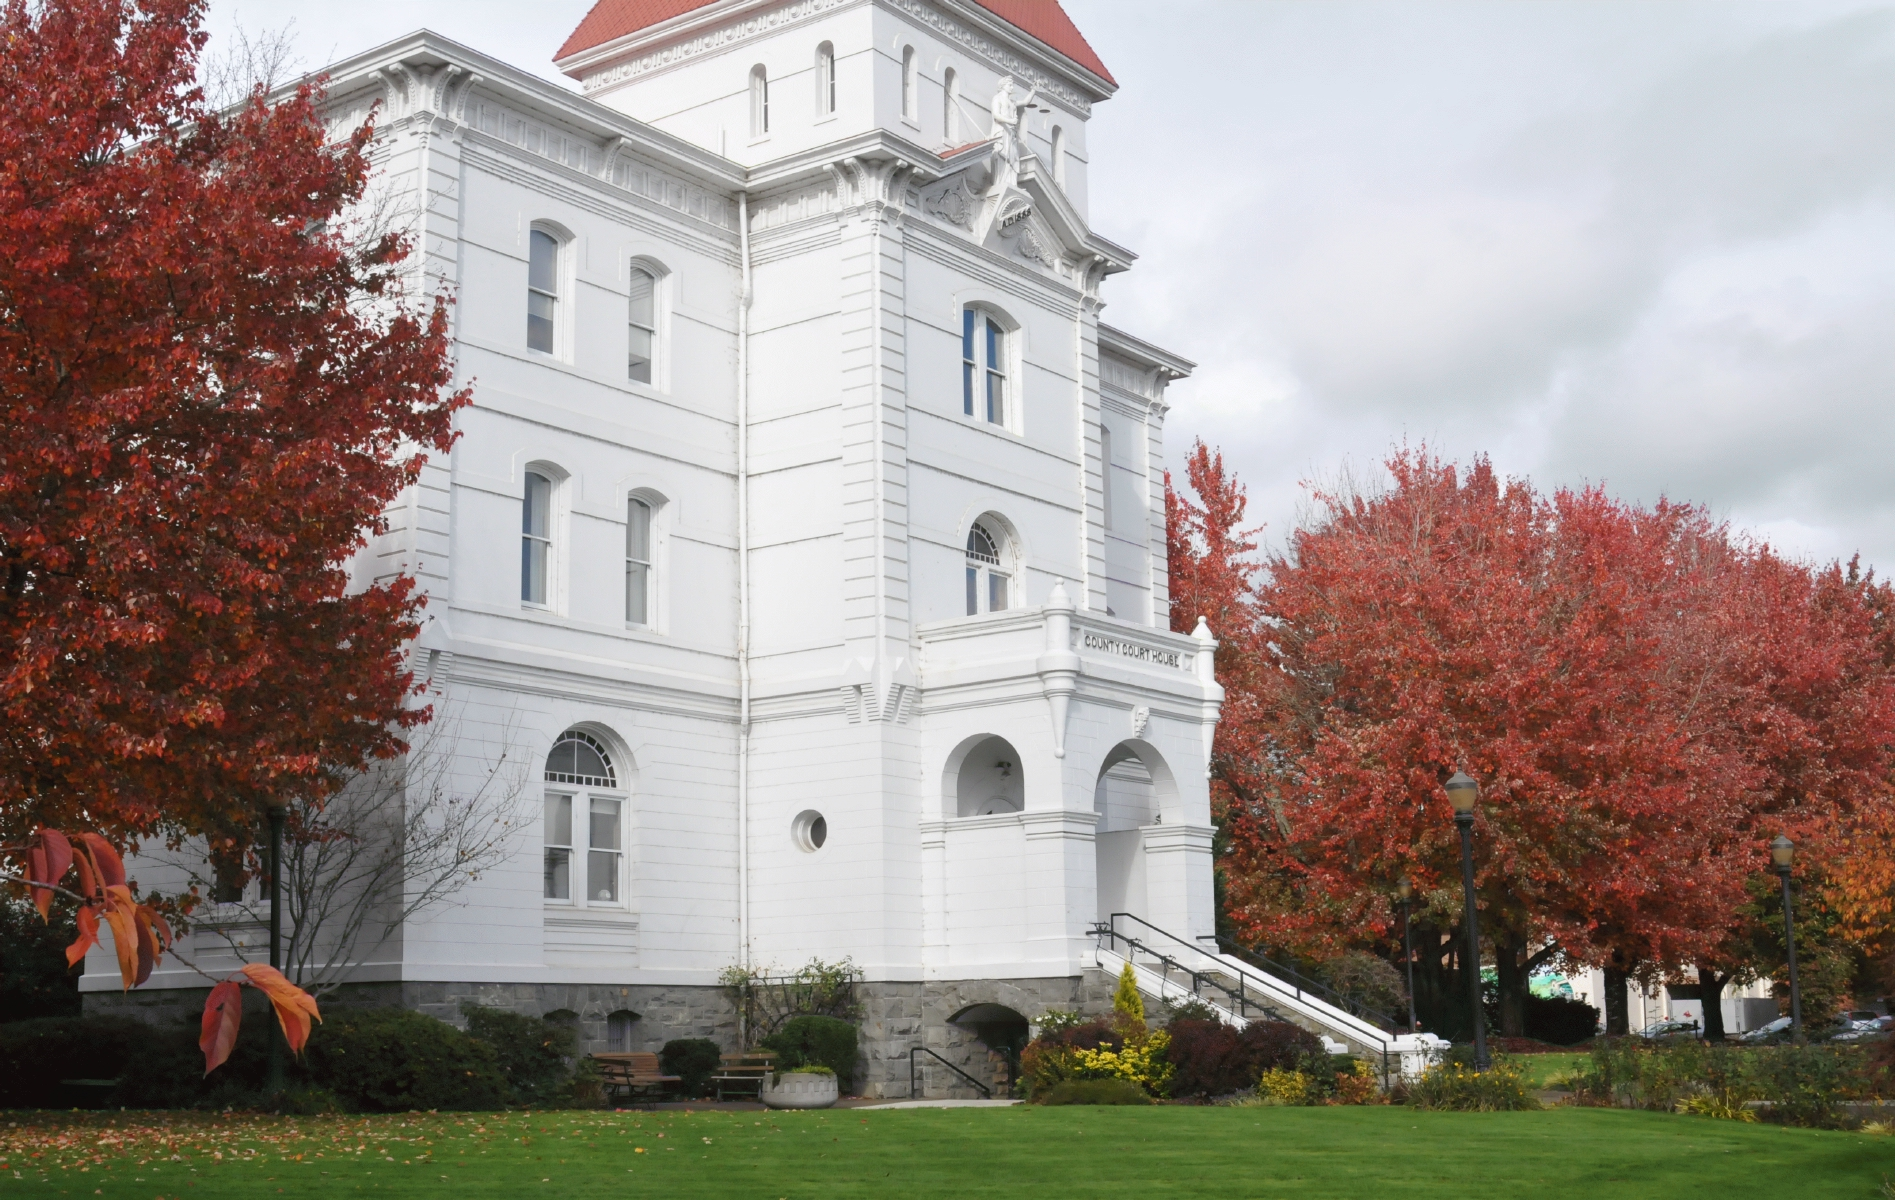 Benton_County_Court_House_Corvallis_Oregon_20151109_113912_C15_5309